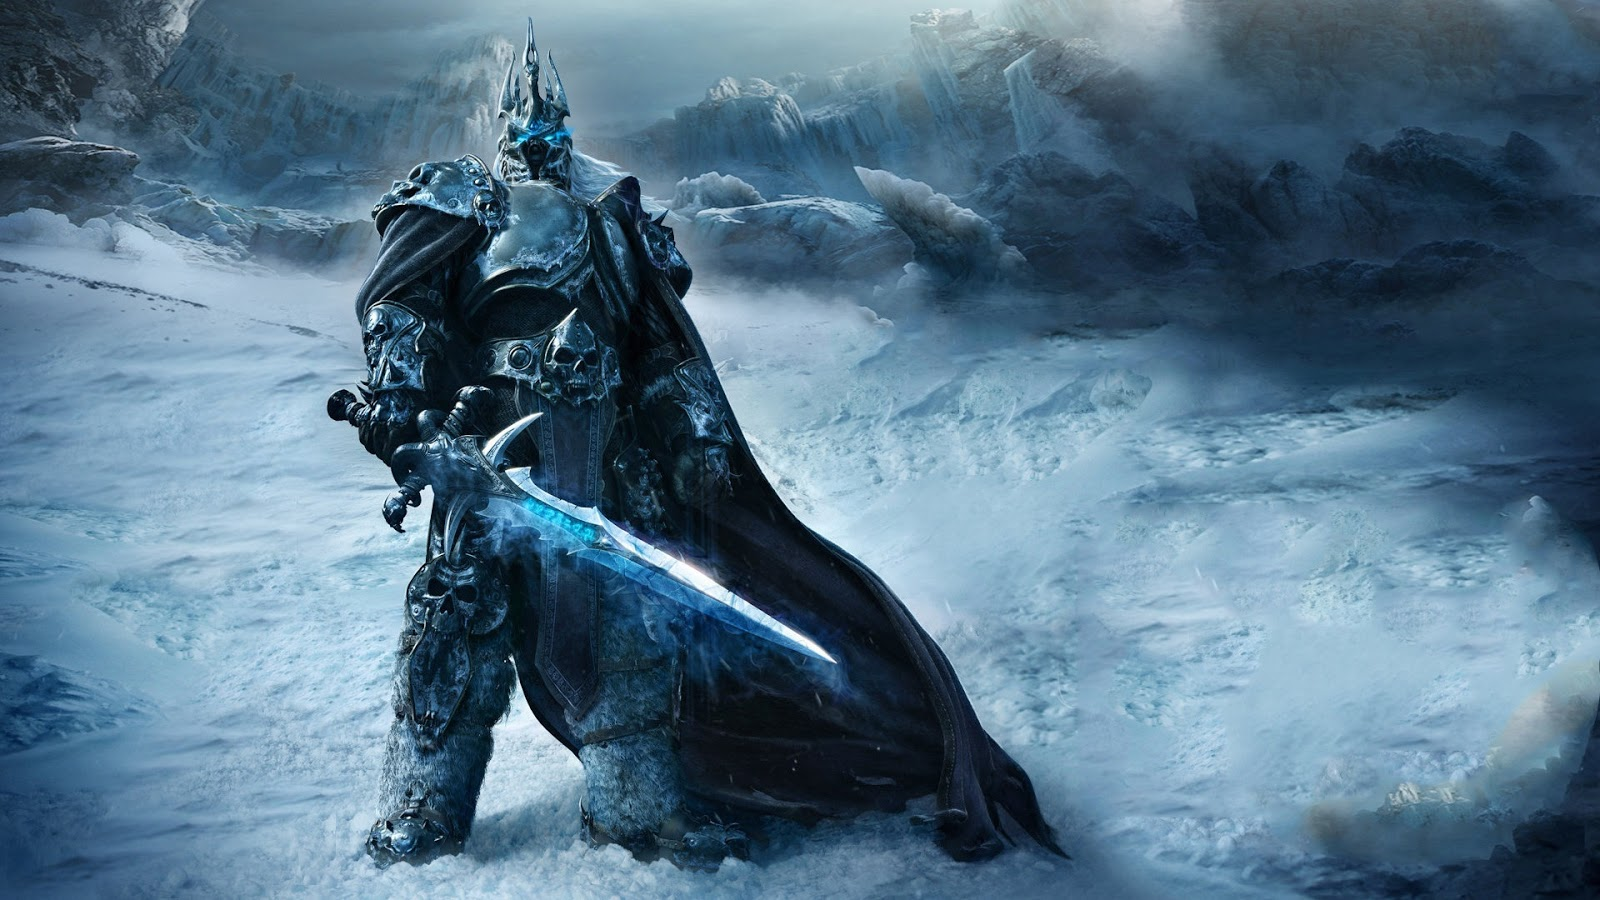 http://1.bp.blogspot.com/-kwc5DkVeFGk/UQYpXdQFzSI/AAAAAAAAaFc/mTudvXpu2Mo/s1600/world_of_warcraft_wrath_of_the_lich_king-1920x1080.jpg